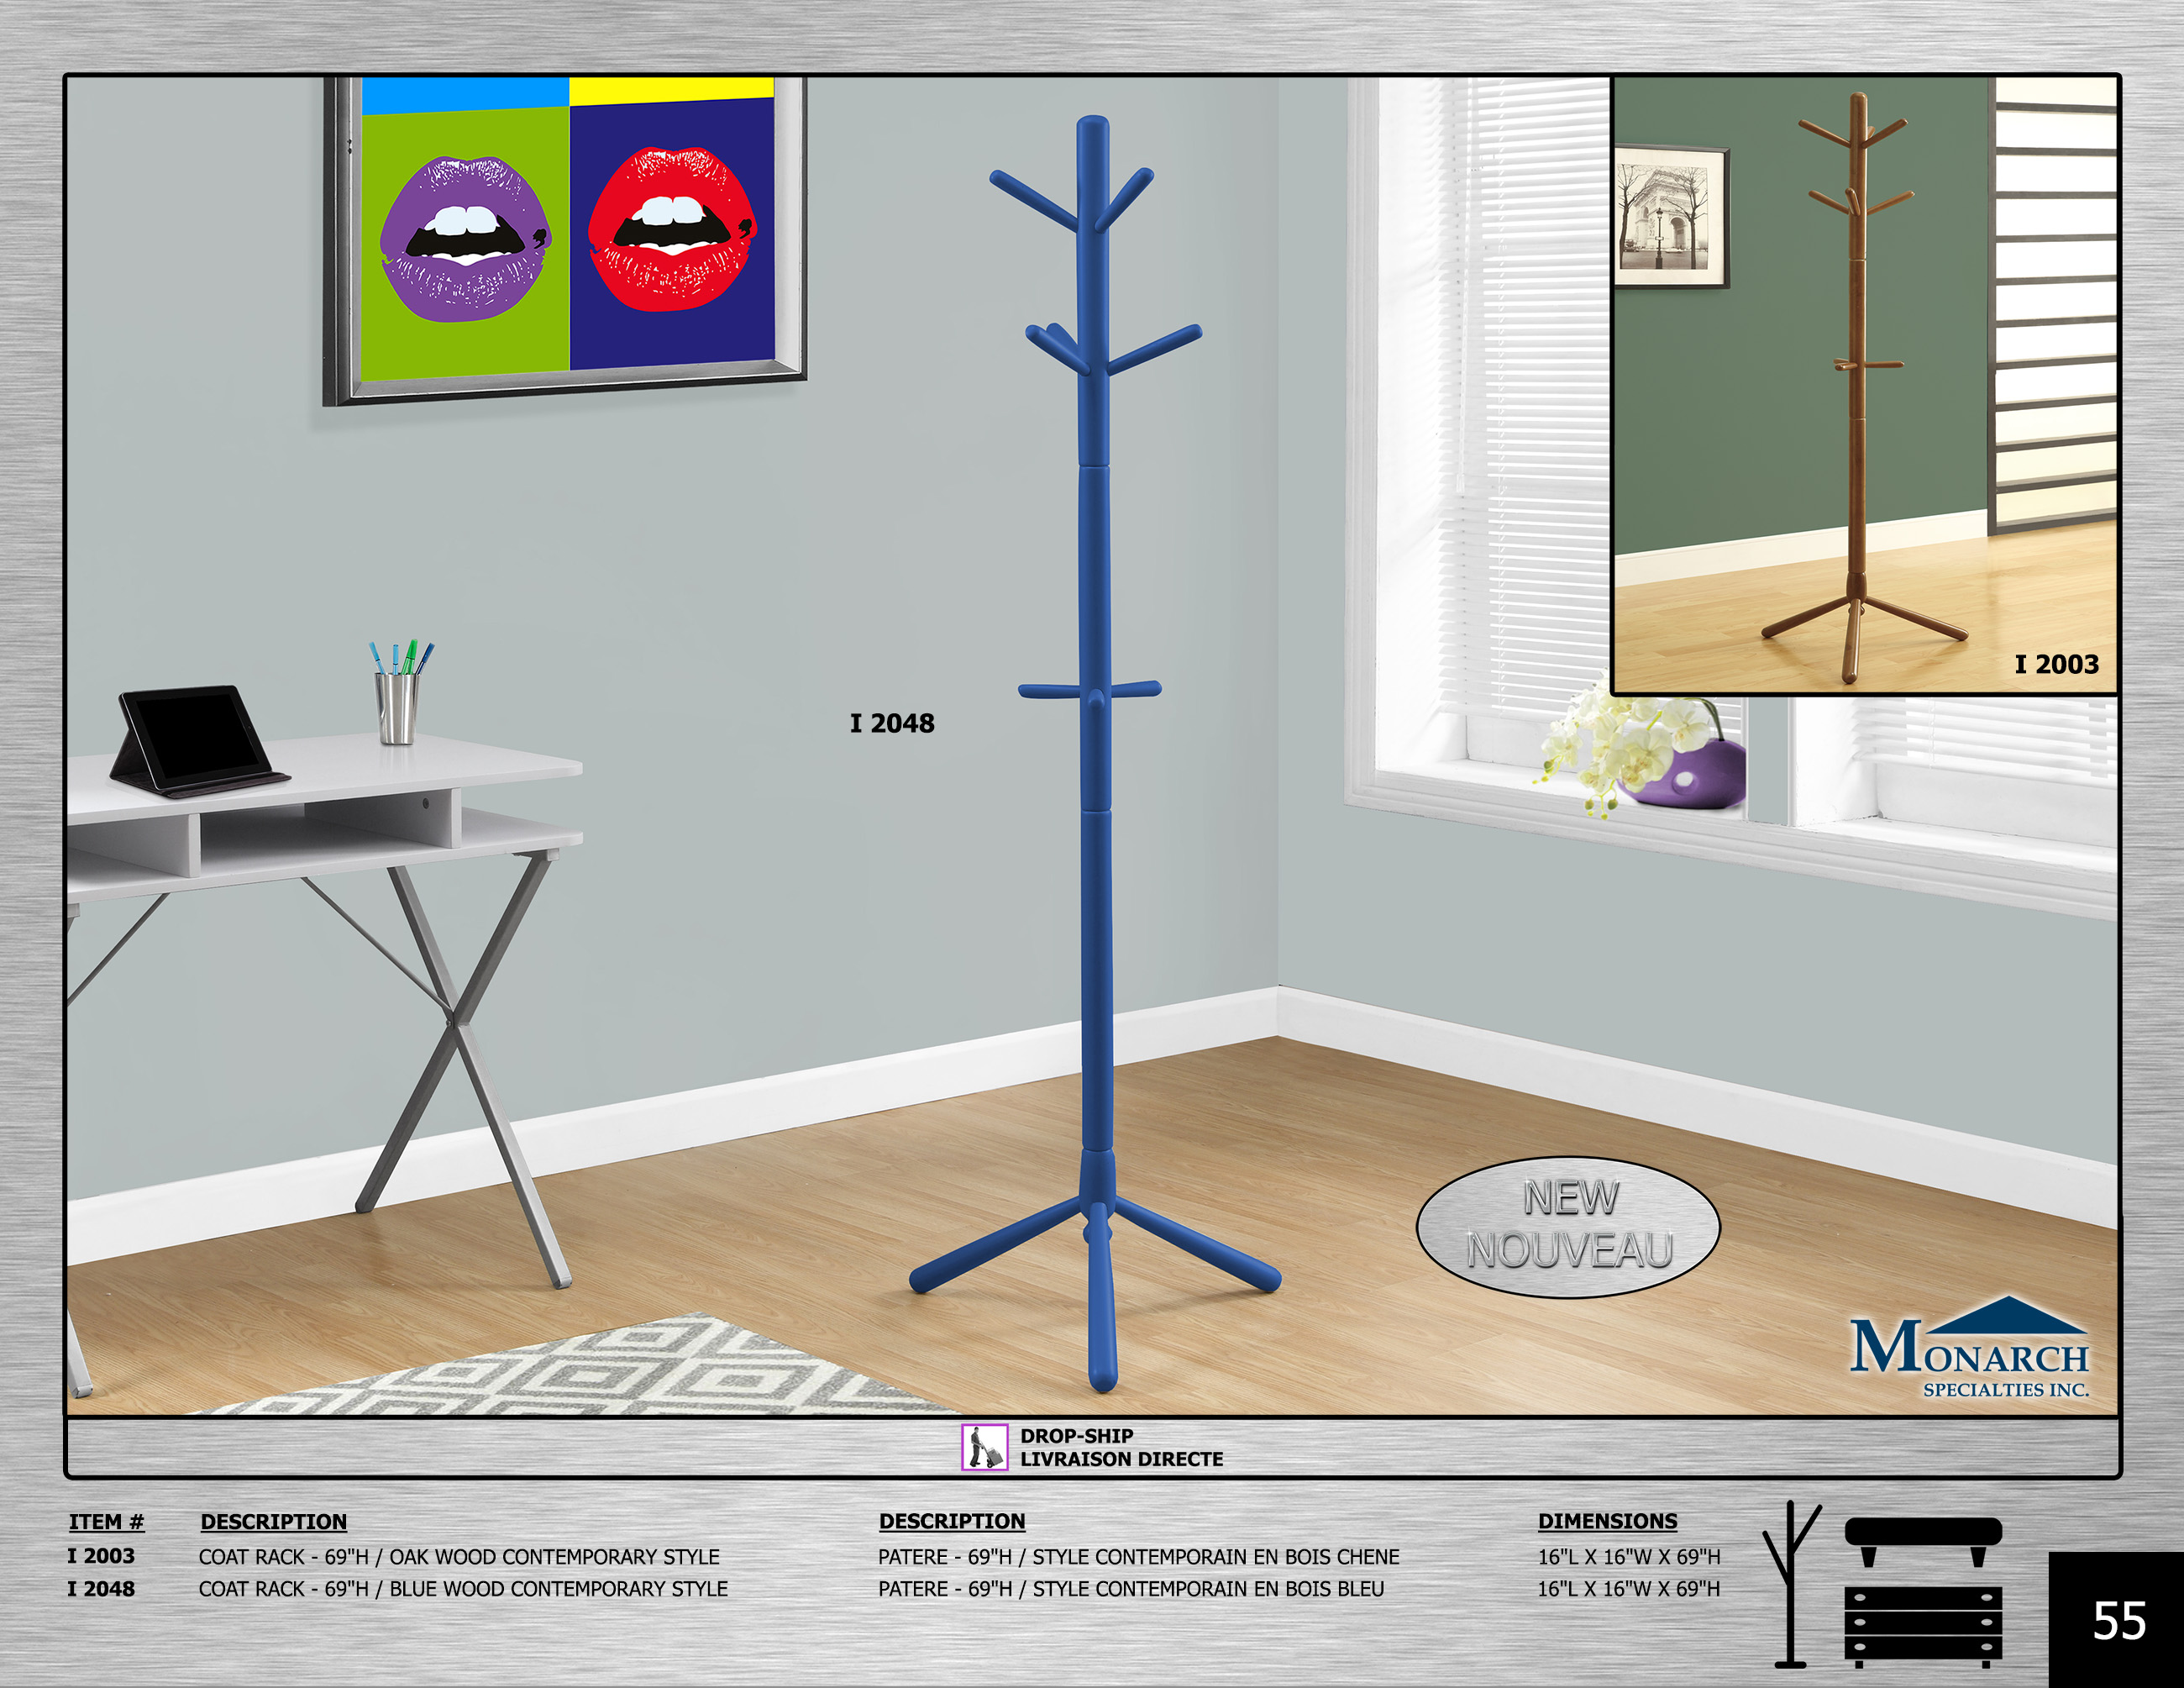 Coat rack bleue ameublement beaubien magasin de for Meuble beaubien